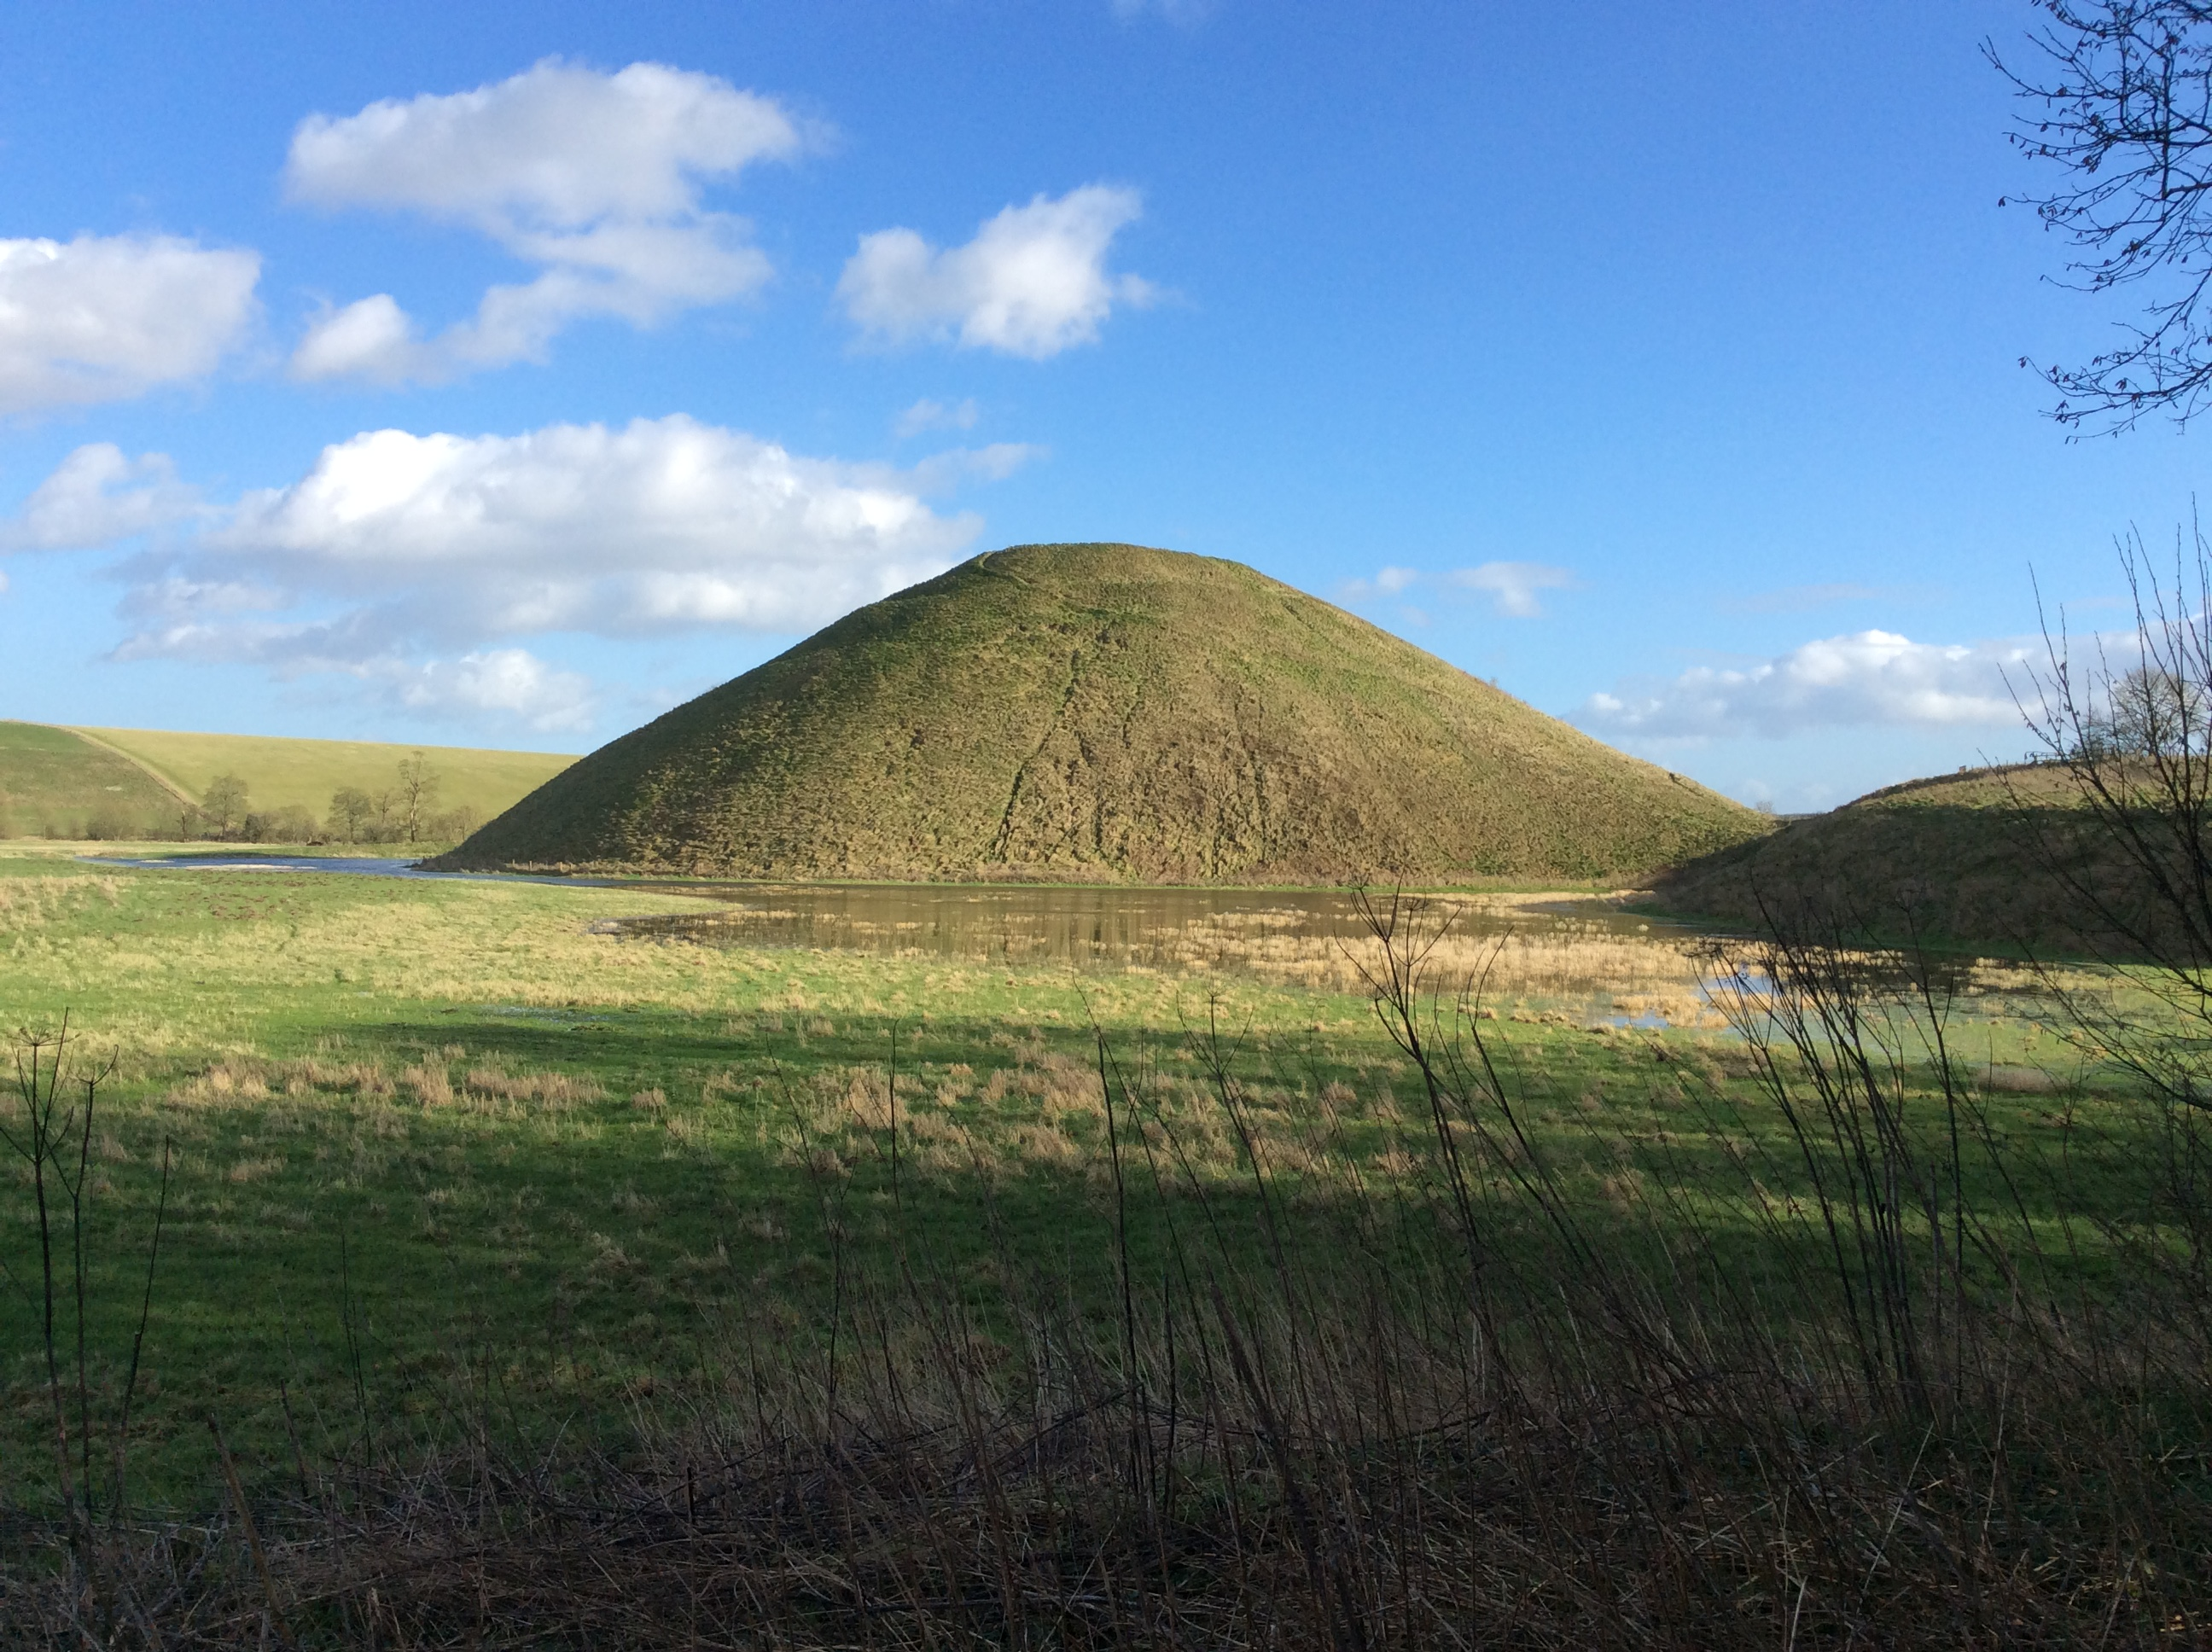 Neolithic Silbury Hill